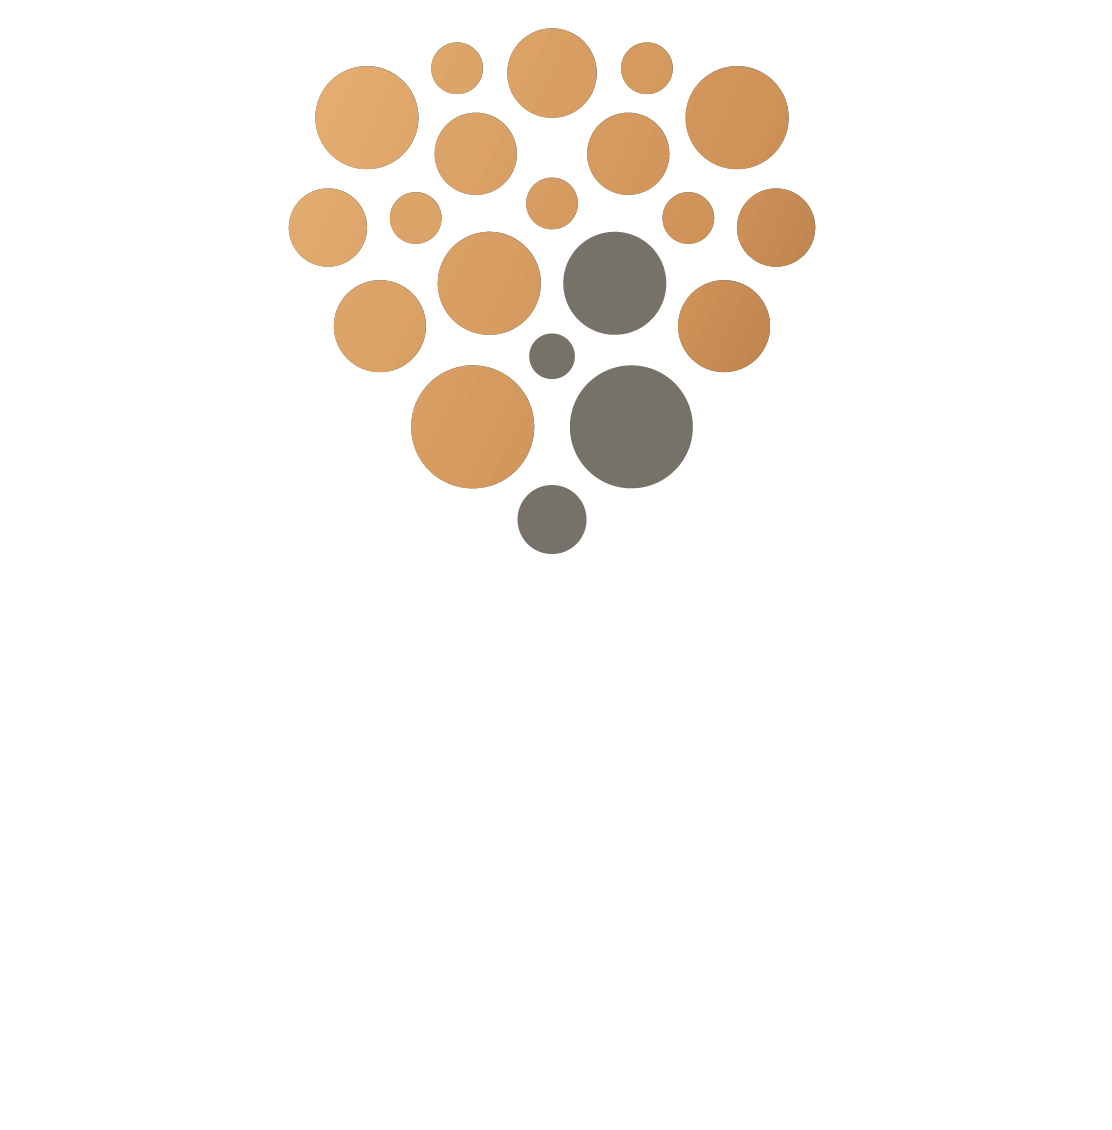 strawberry-publishing-logo-web3.png